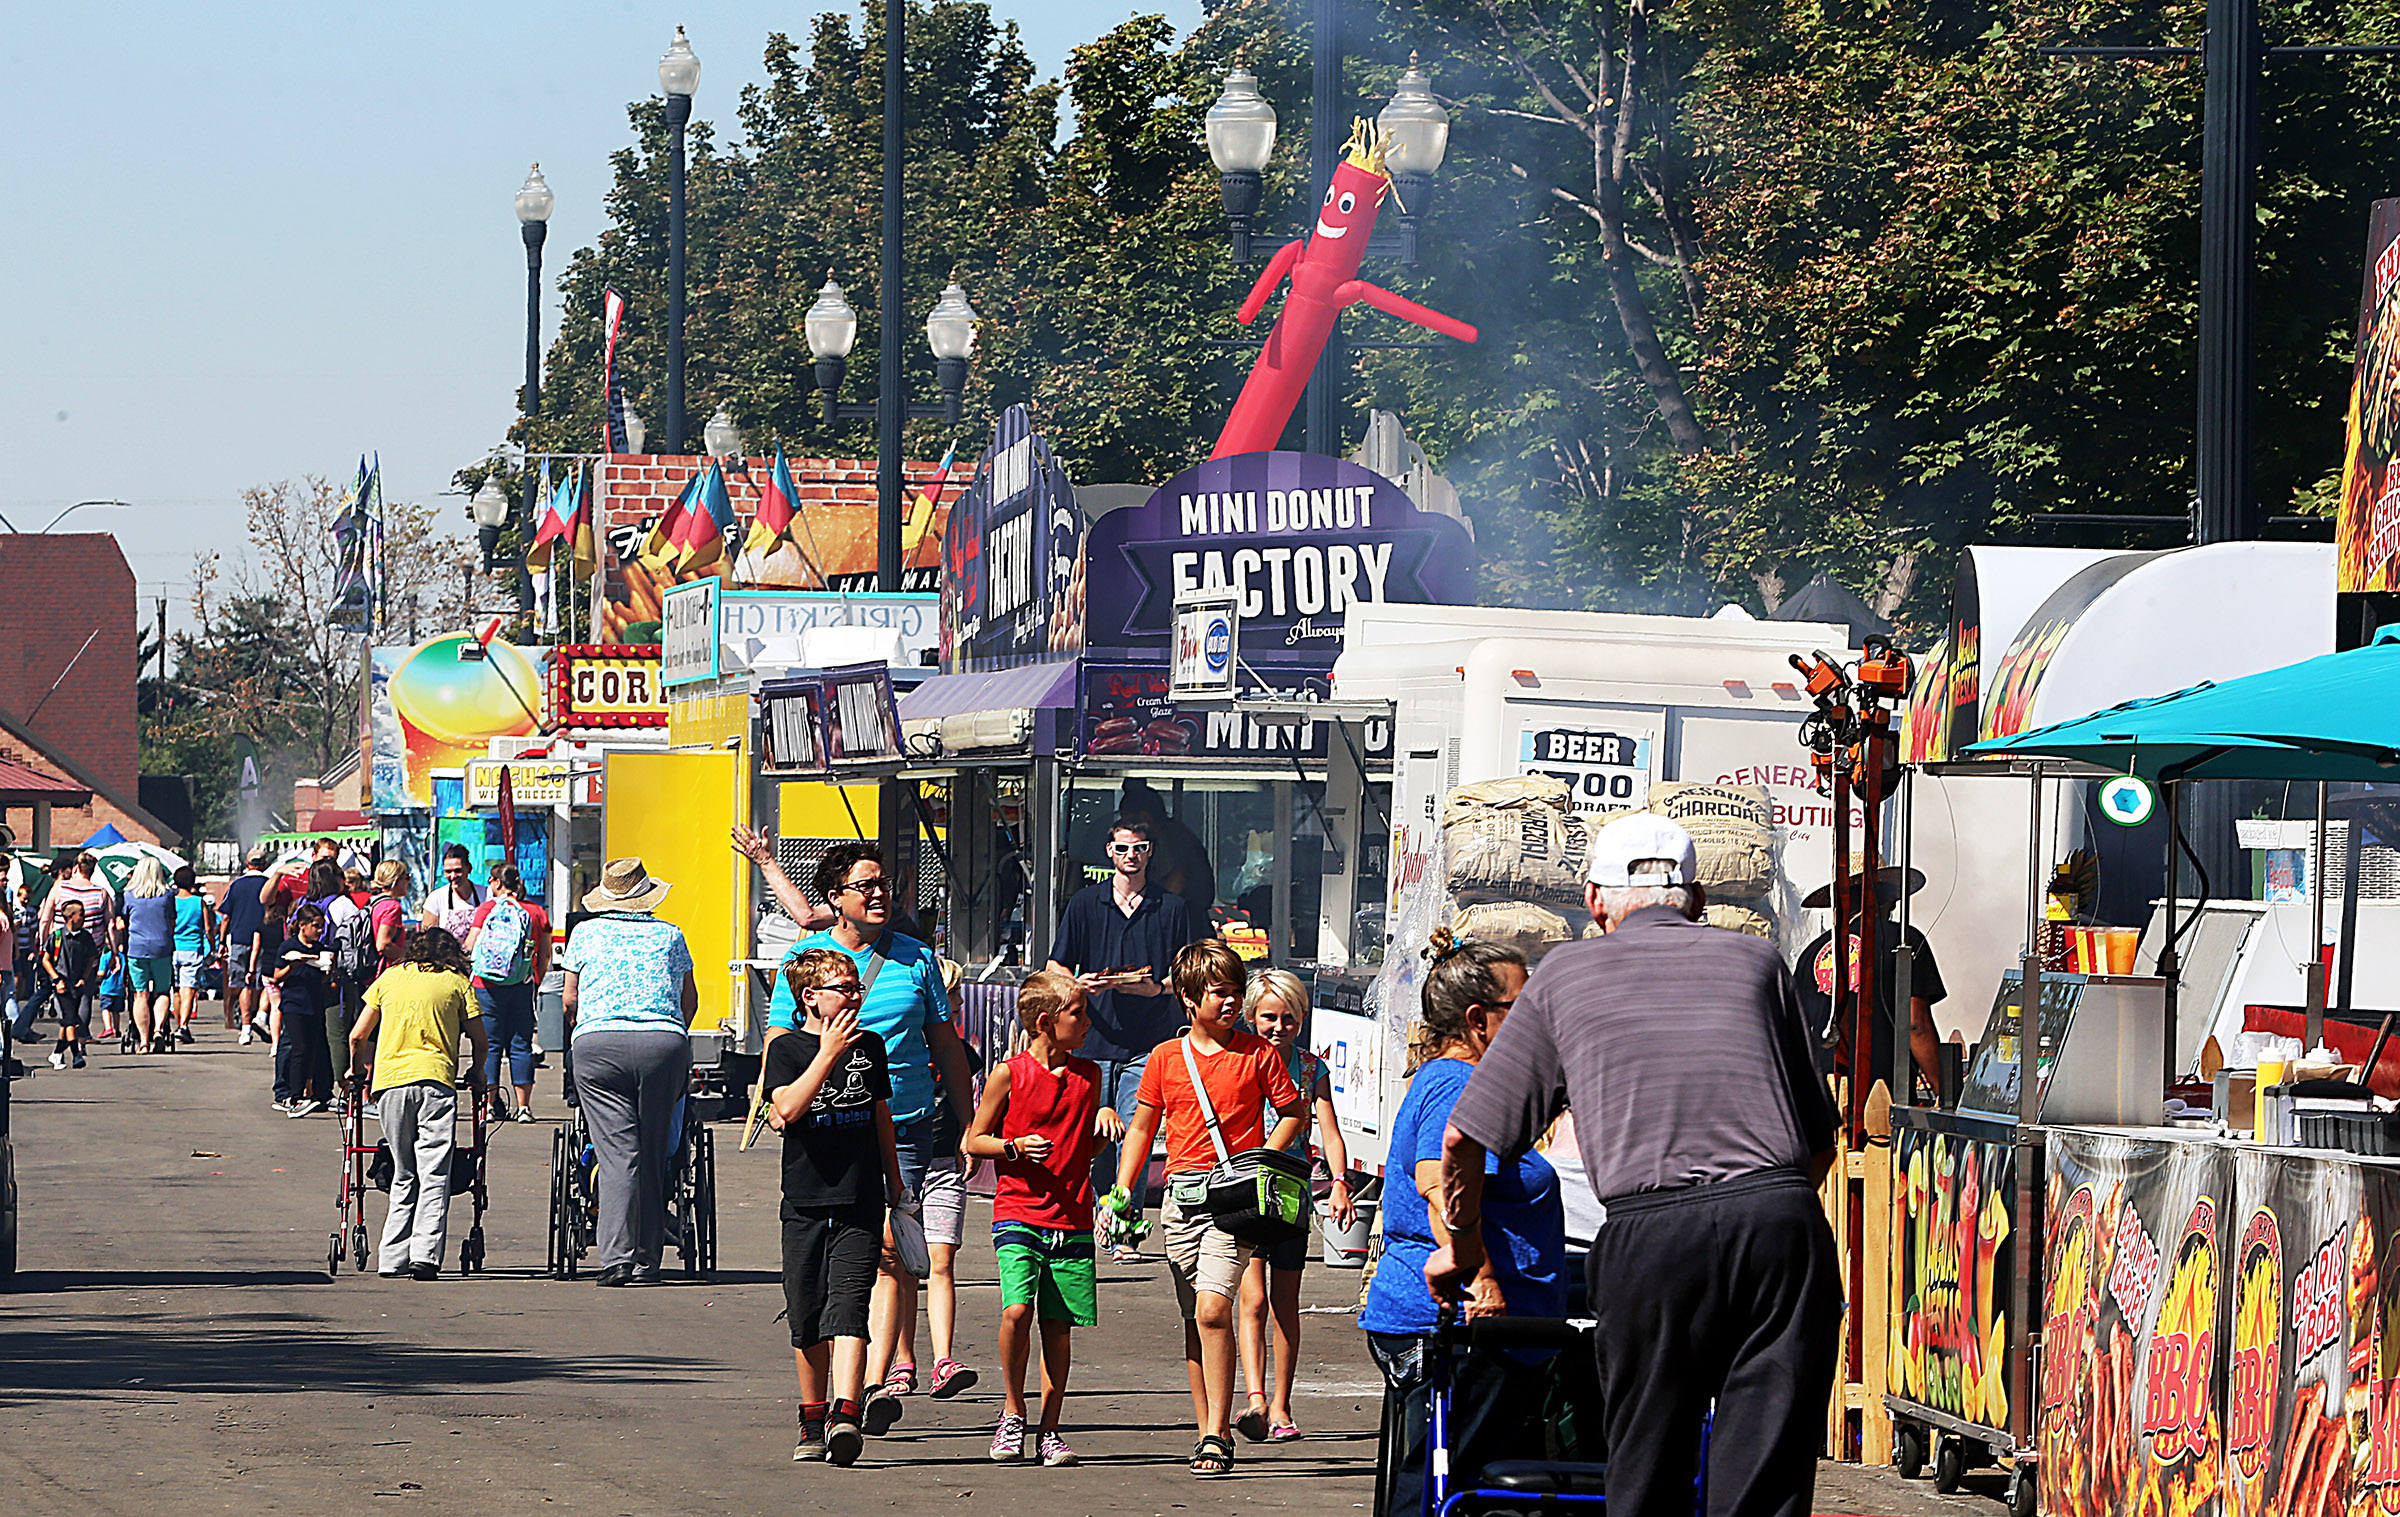 Fair attendees search out food options at the Utah State Fair in Salt Lake City on Monday, Sept. 11, 2017.